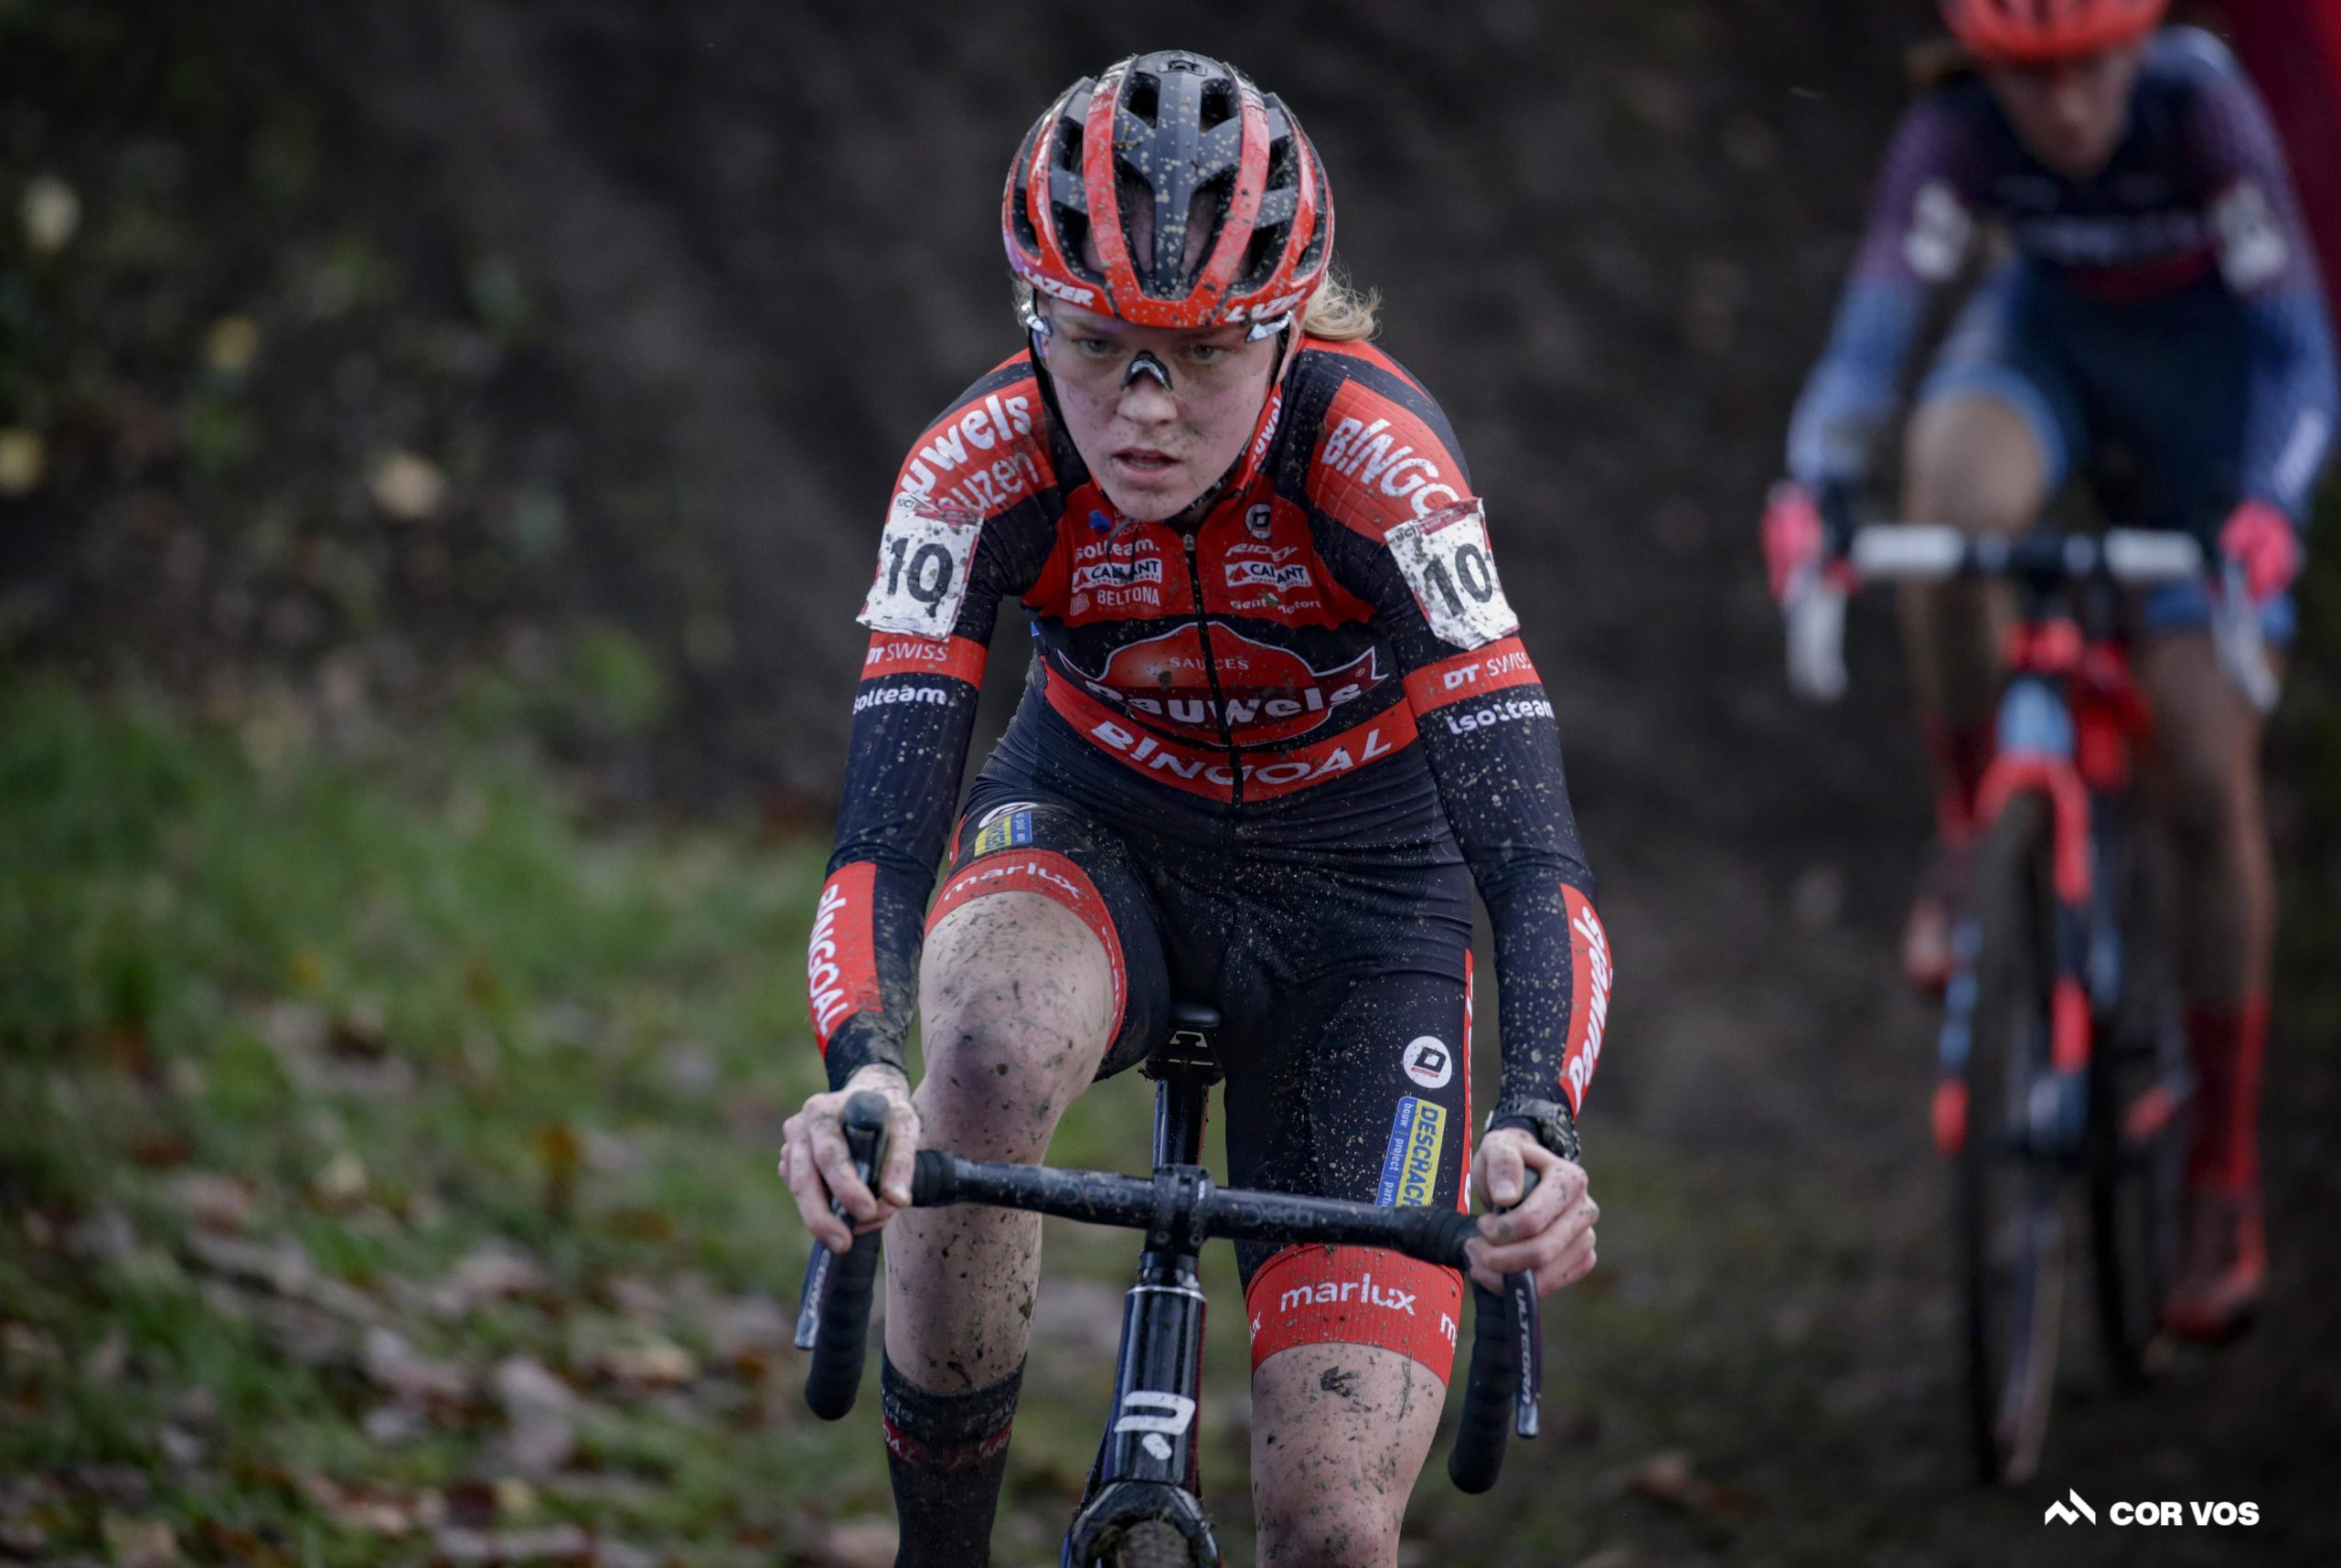 Meet the 18-year-old cyclocross sensation who's taking it to the world's best